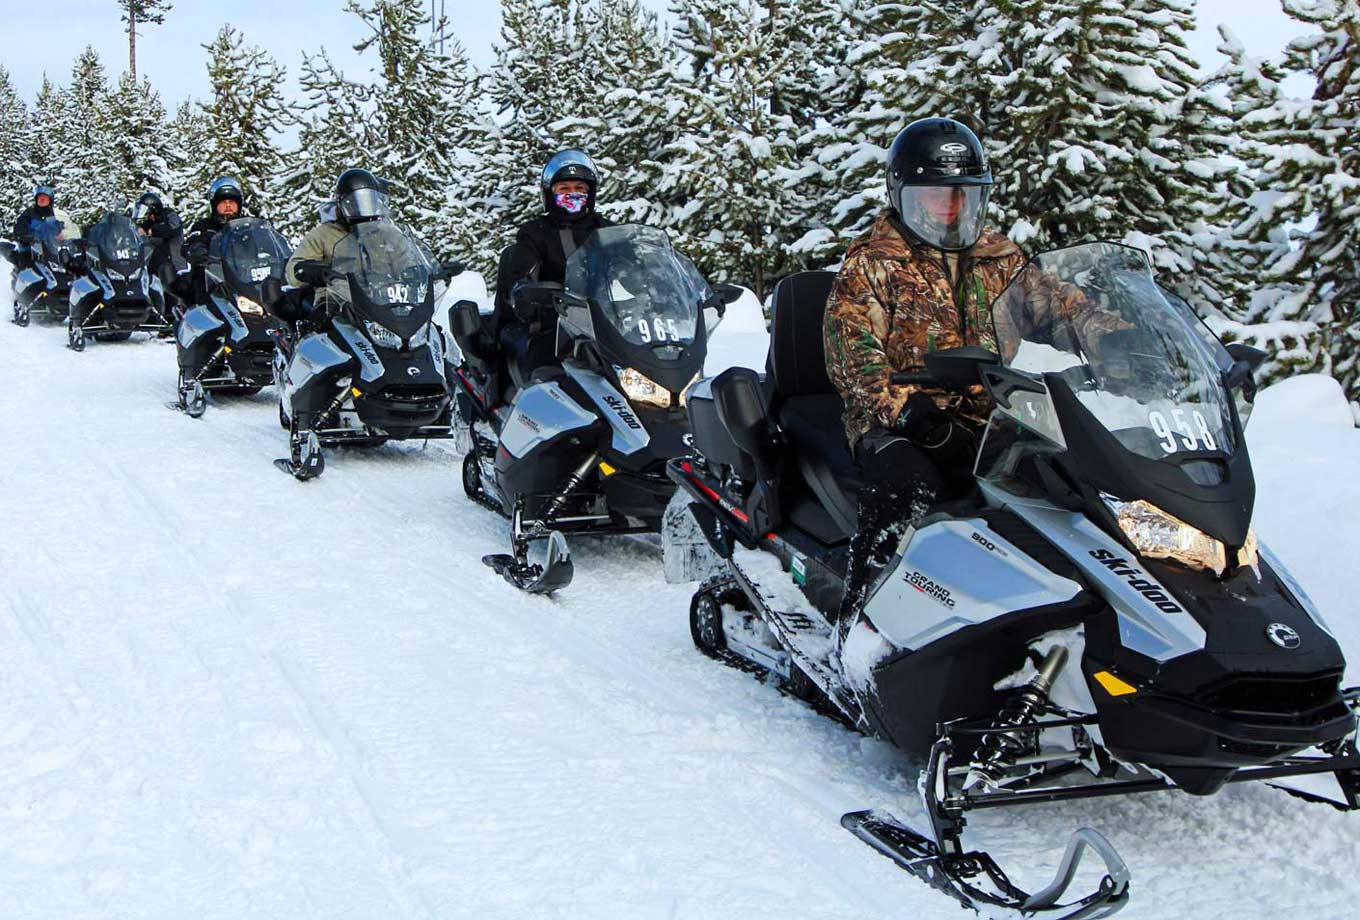 A group of snowmobile riders on a guided tour through Yellowstone National Park